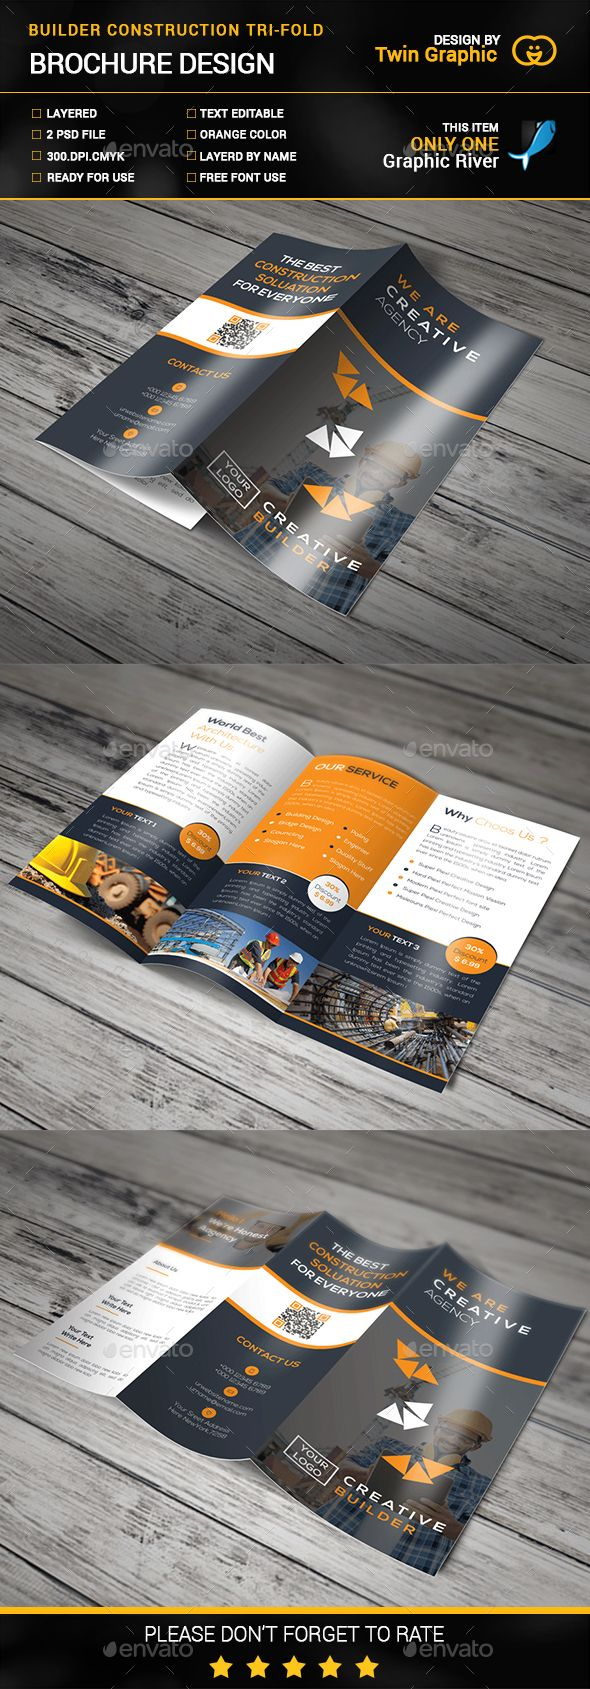 Construcation Tri-Fold Brochure. Download here: http://graphicriver.net/item/construcation-trifold-brouchure/14883277?ref=ksioks